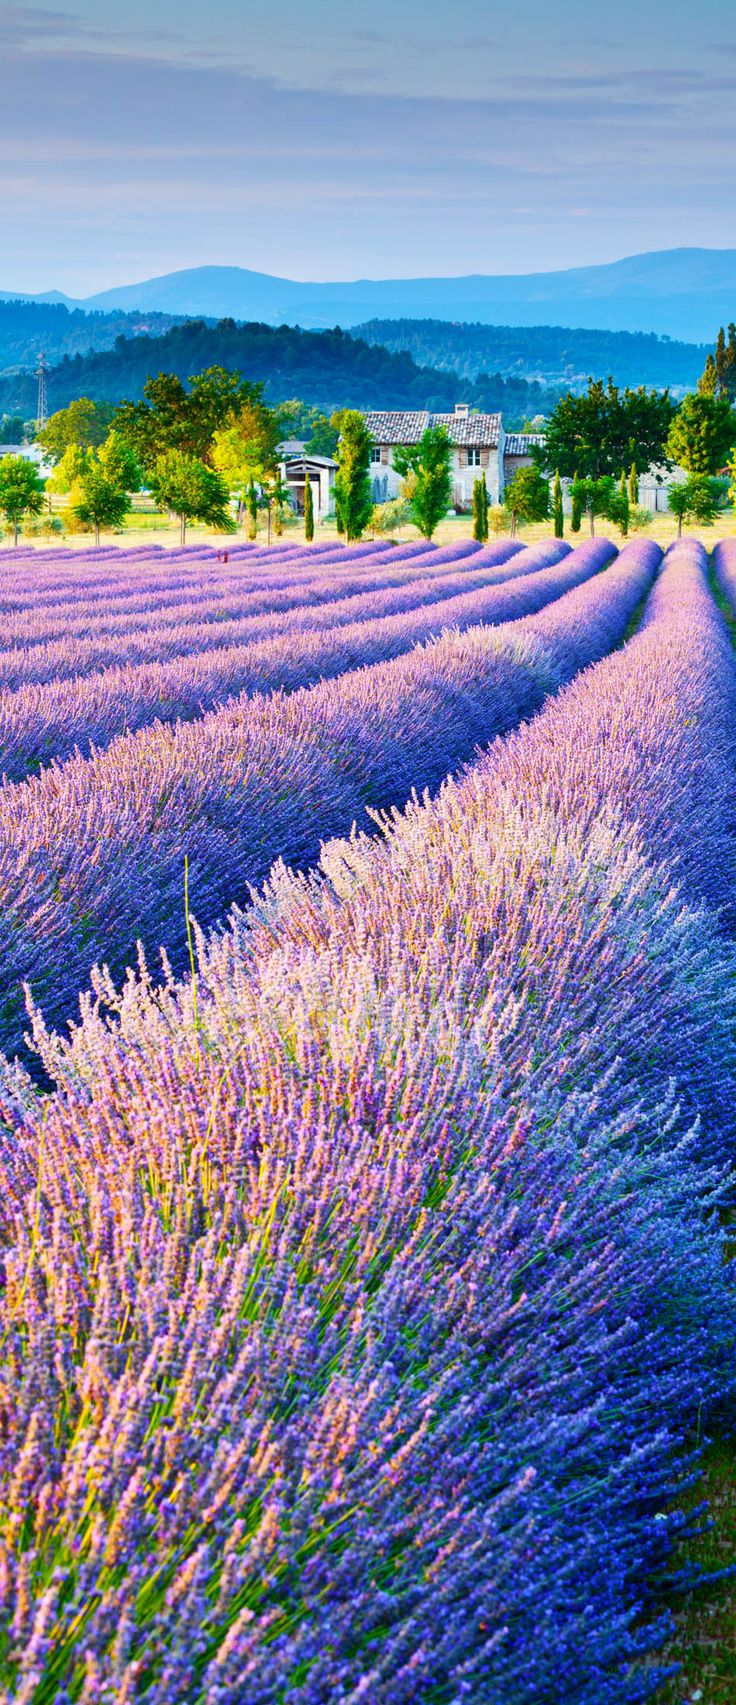 The fragrant lavender fields bloom from June to August in the Luberon, around the Mont-Ventoux, in the region of Sault and that of Valreas, such amazing scenery and atmosphere make the lavender fields one of the summer must sees in Provence, France. Photo: amongraf.ro/photos/lavenderfrance